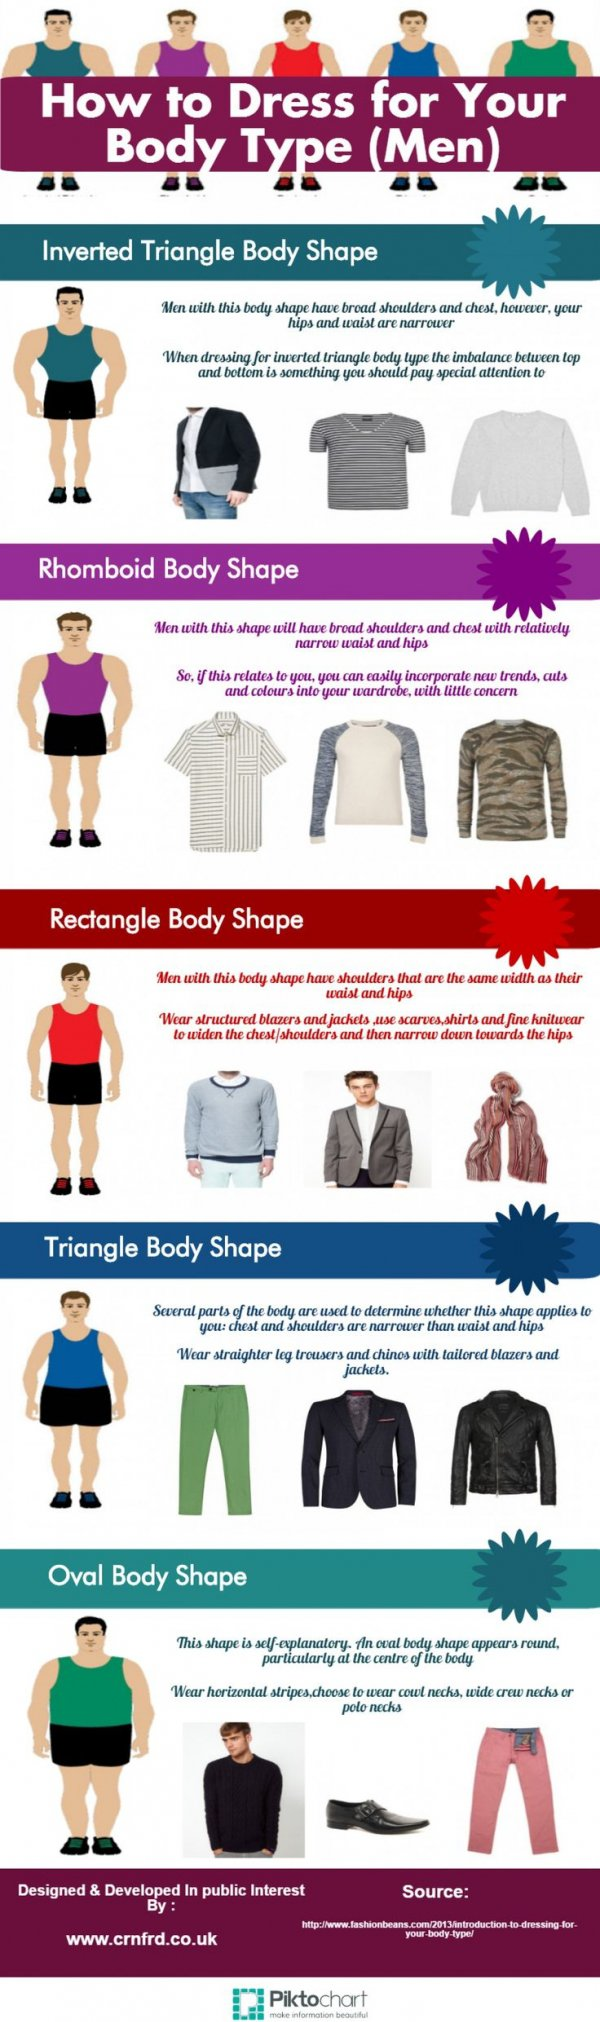 How to Dress for Your Body Type (Men)